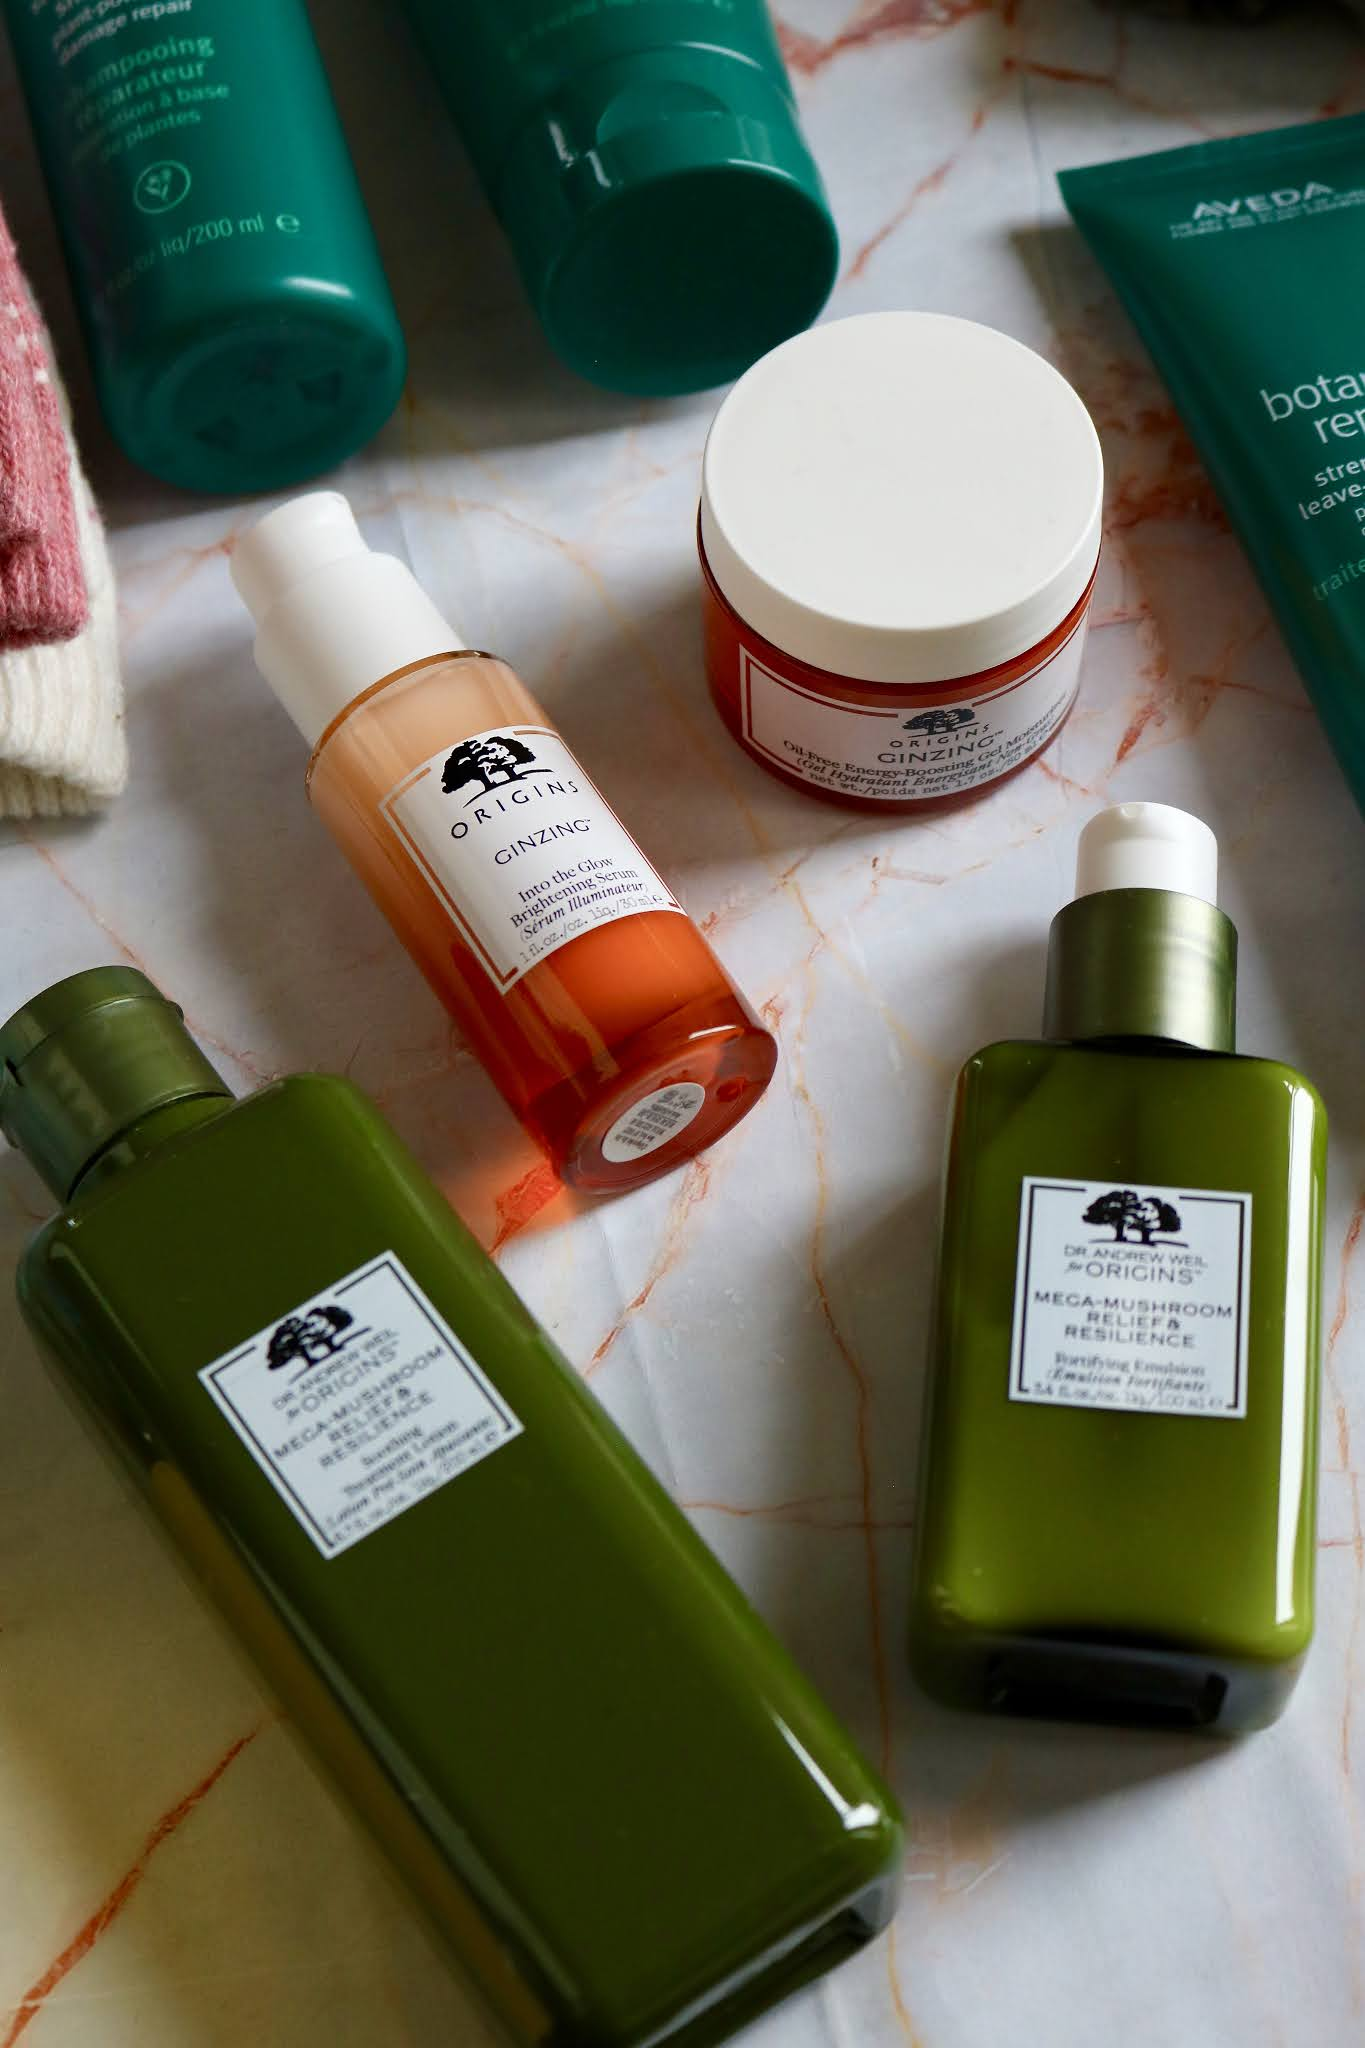 Origins Ginzing Into the Glow Brightening Serum £39, Energy-Boosting Gel Moisturiser £26, Dr Andrew Weil Mega-Mushroom Relief & Resilience Soothing Treatment and Emulsion both £32